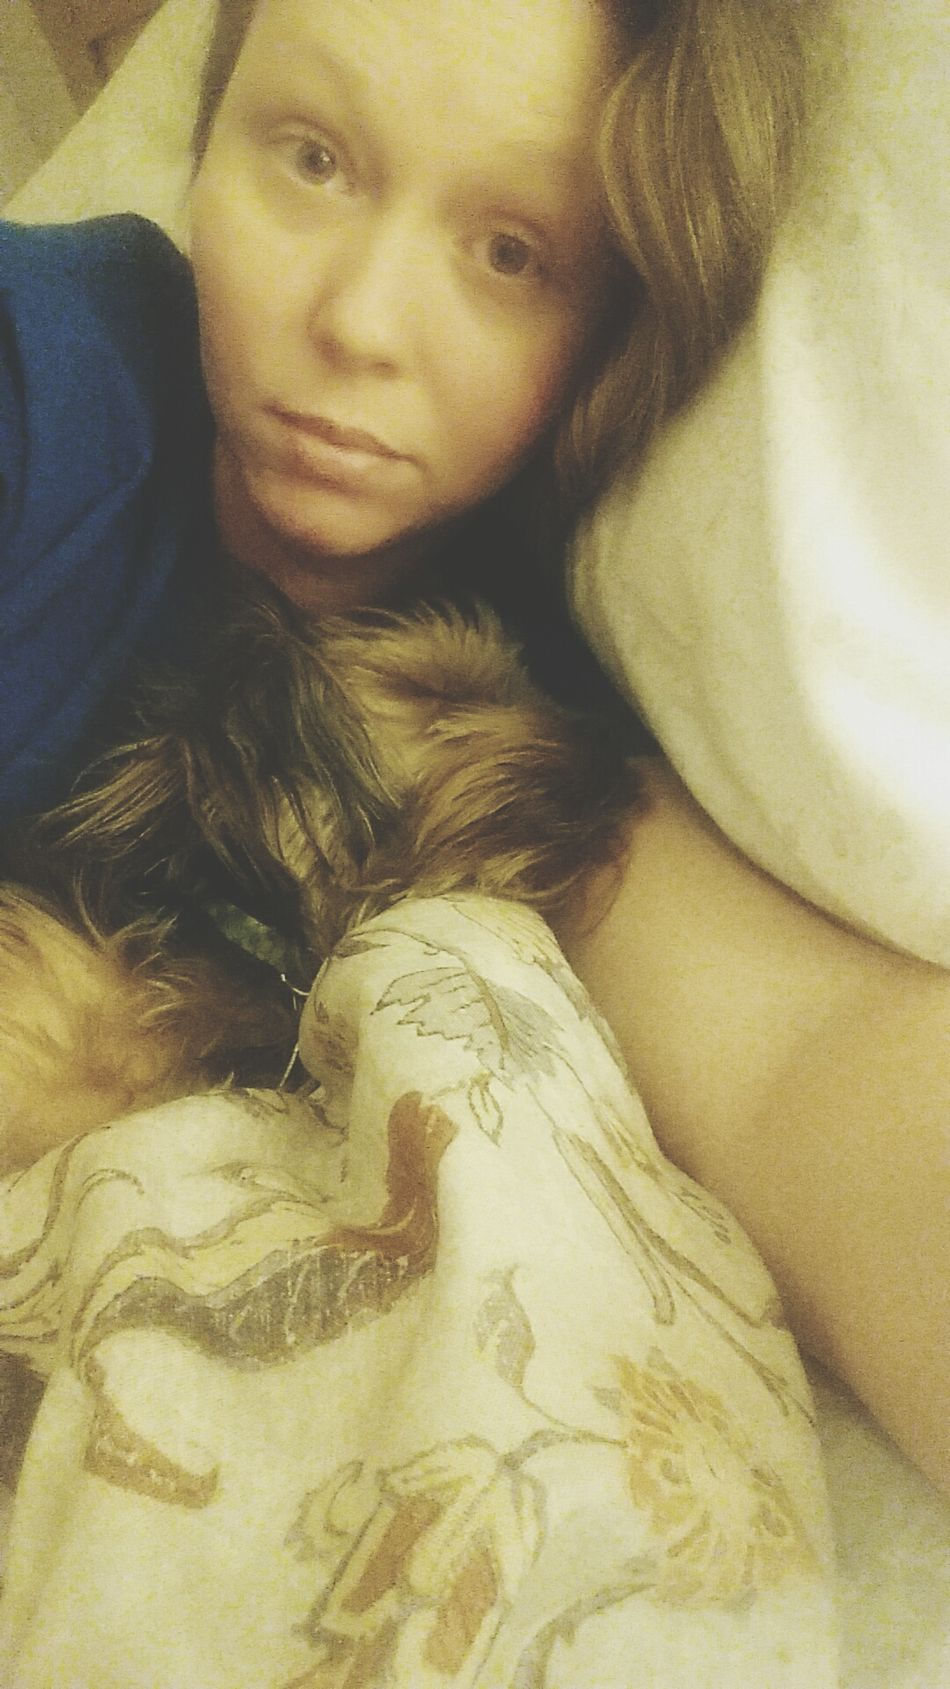 Such a sweet baby! I haven't moved out of bed all day and neither furbaby has left my side for a second... SickSelfie Bronchitis Netflixalone